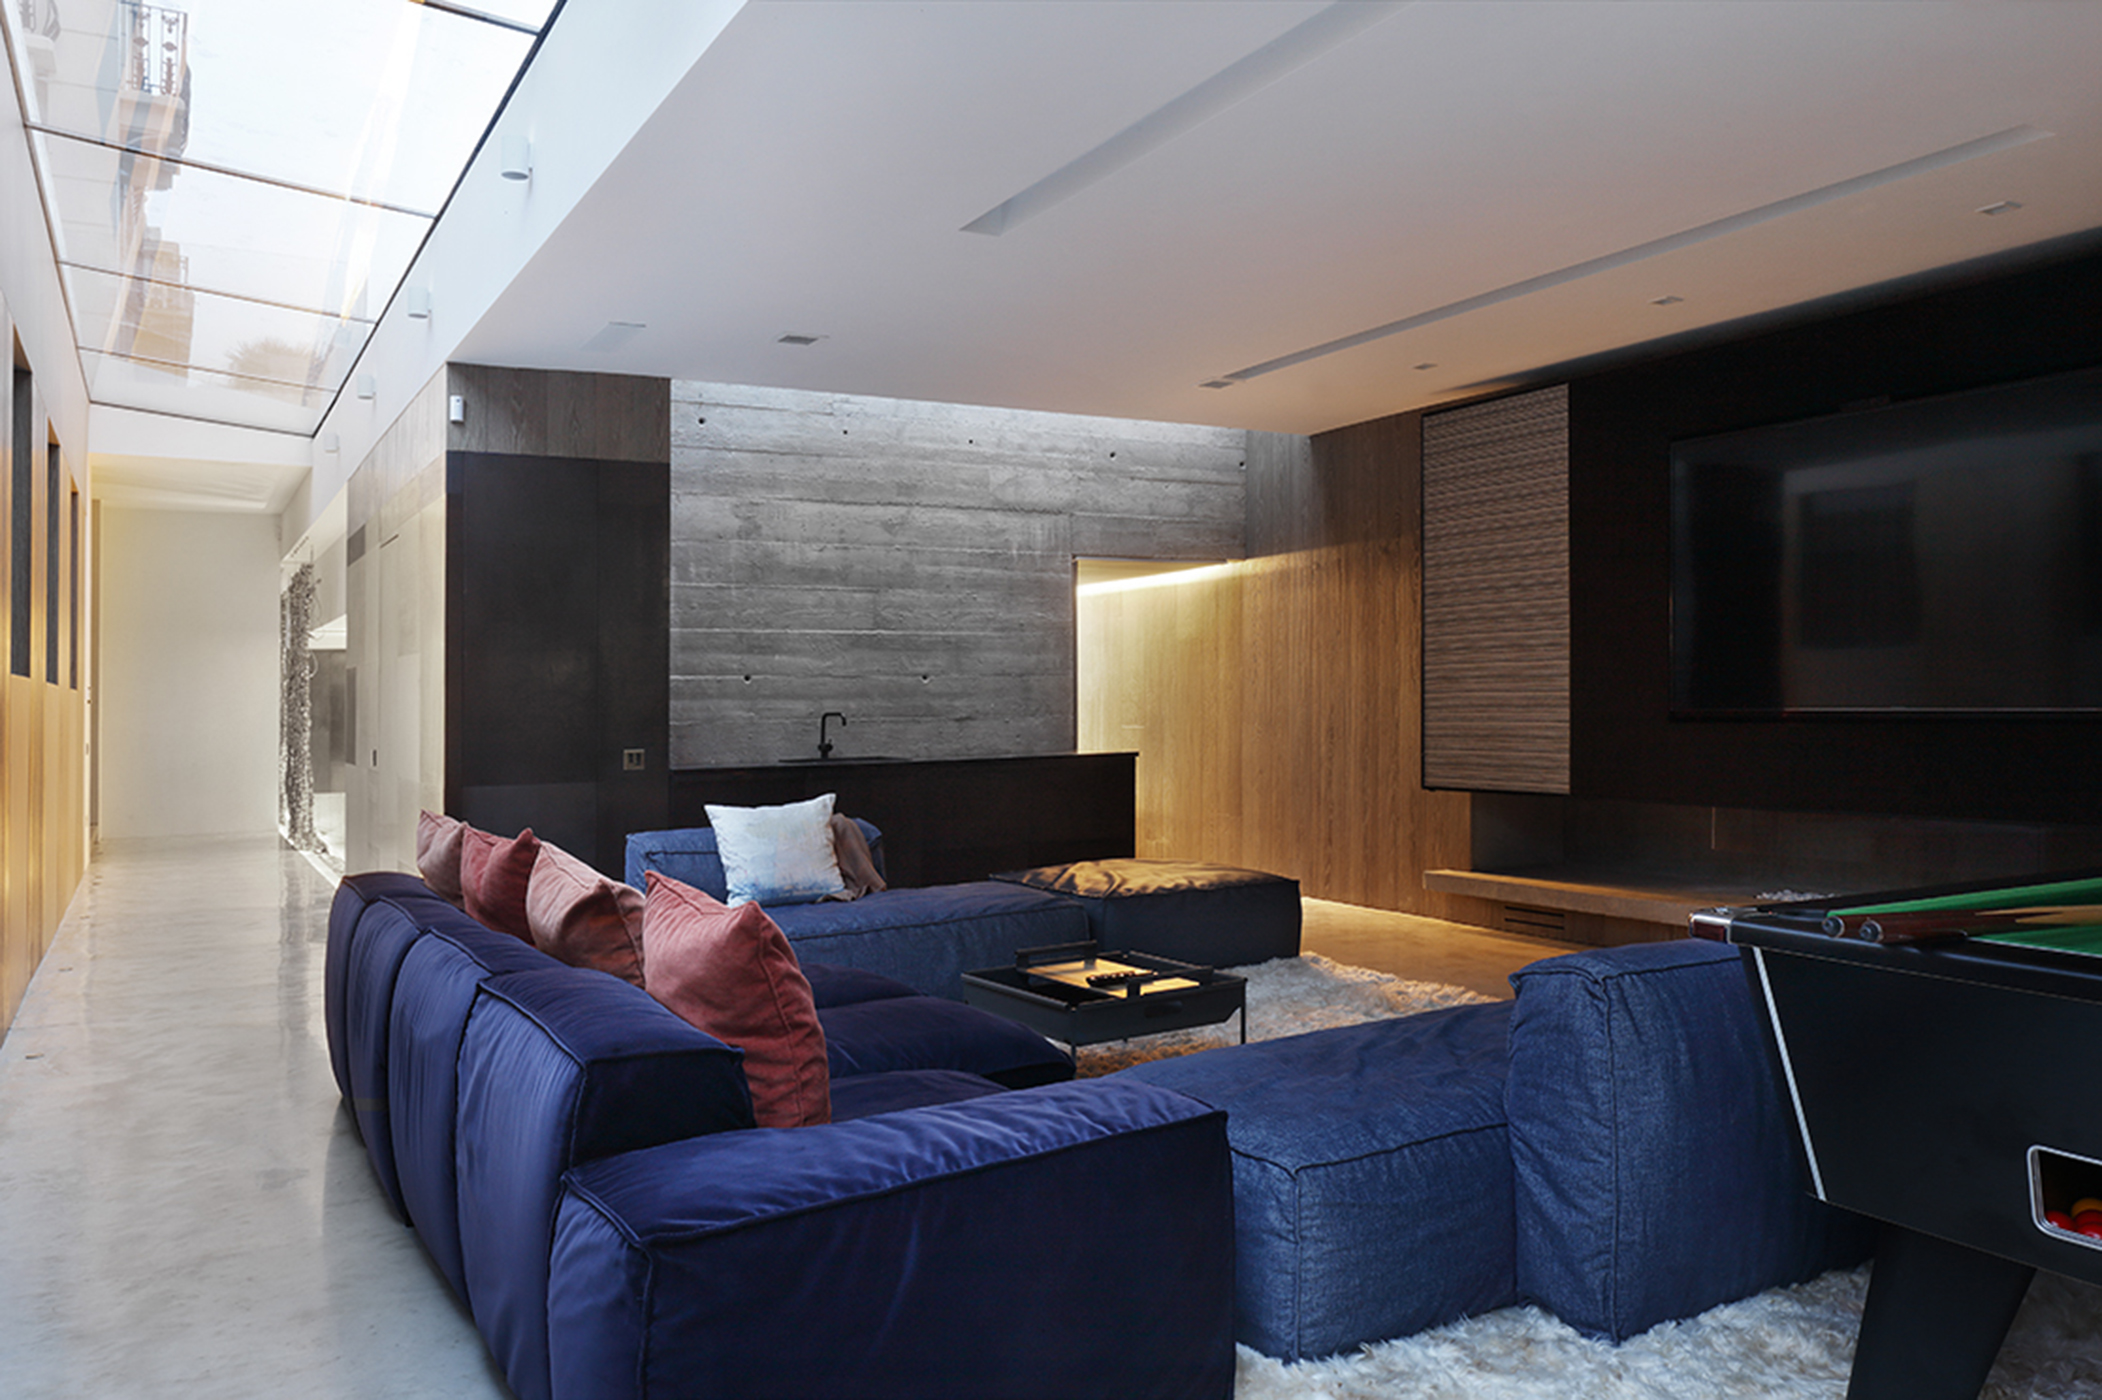 Cinema room mixes raw, cast concrete walls and warm wooden paneling. By Carden Cunietti